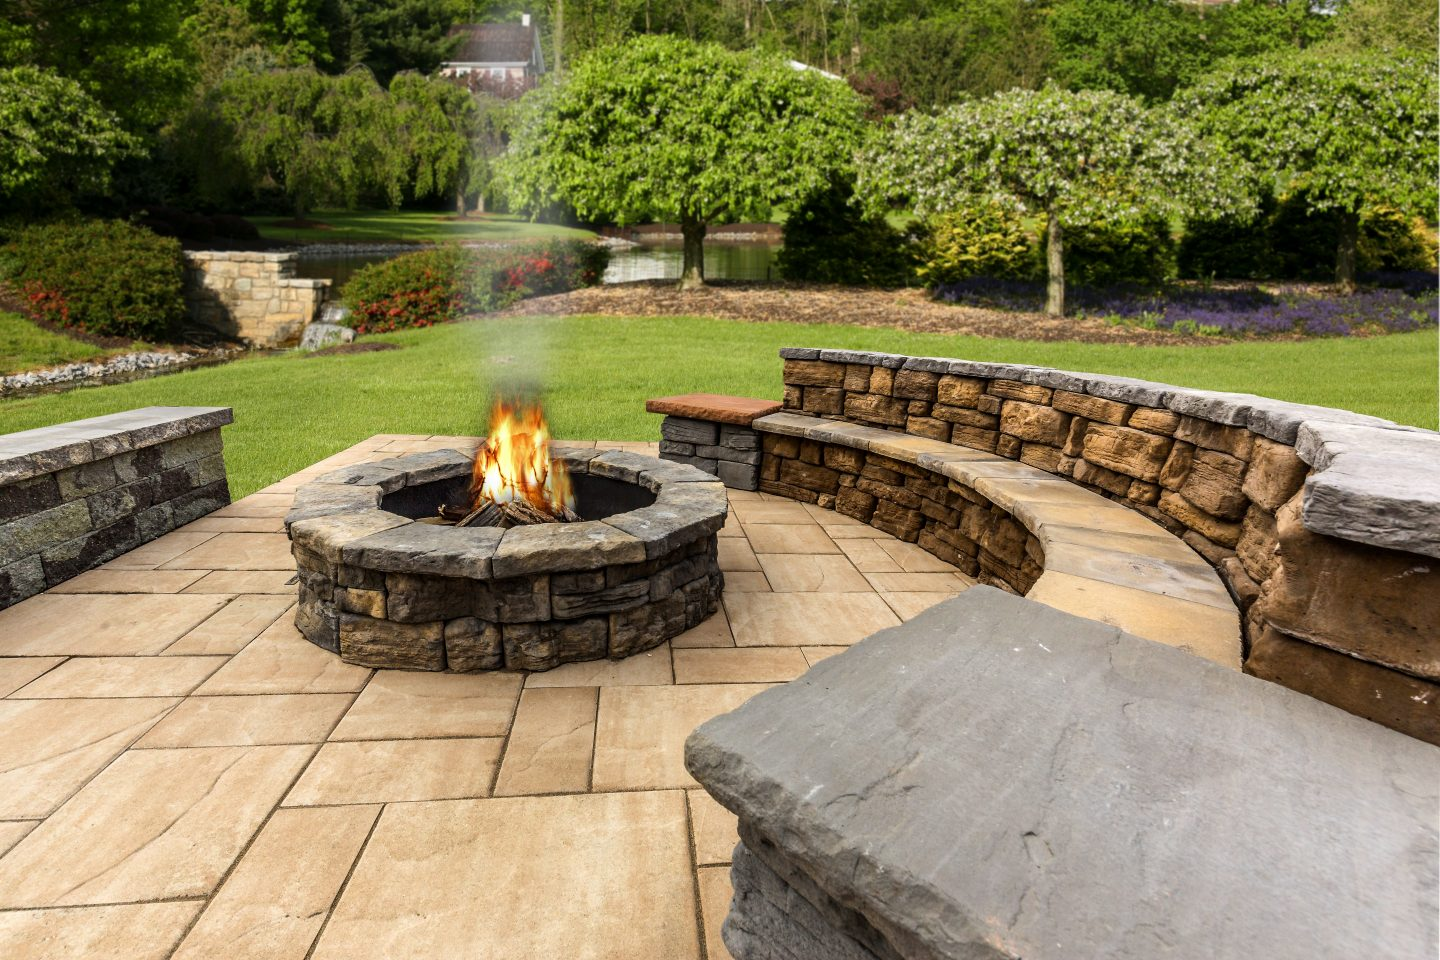 Custom Fire Pit Built into Patio with Bench Seating - Custom Fire Pits Best In Backyards